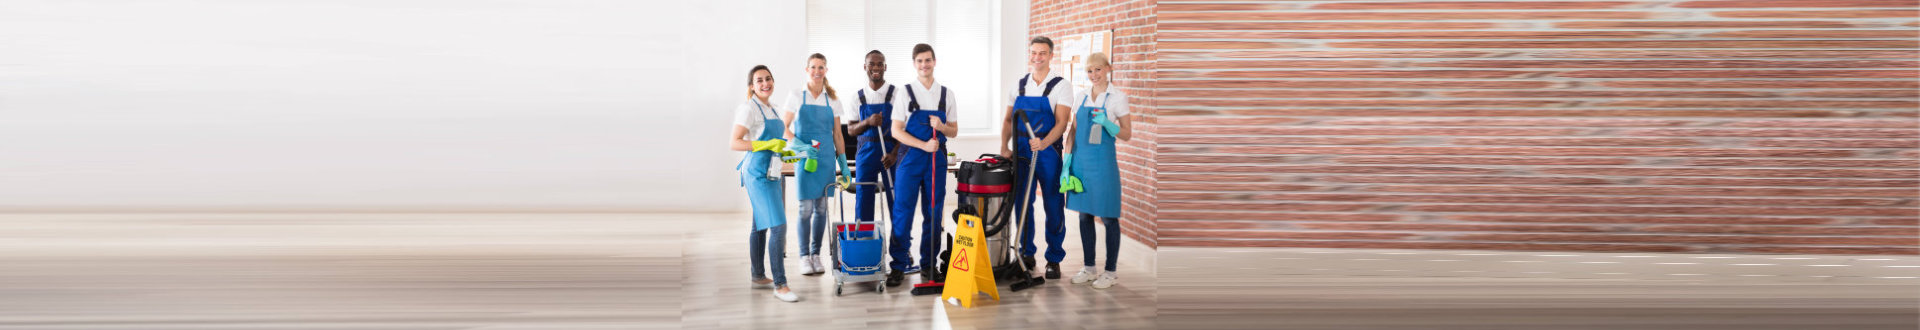 Portrait Of Happy Diverse Janitors In The Office With Cleaning Equipment